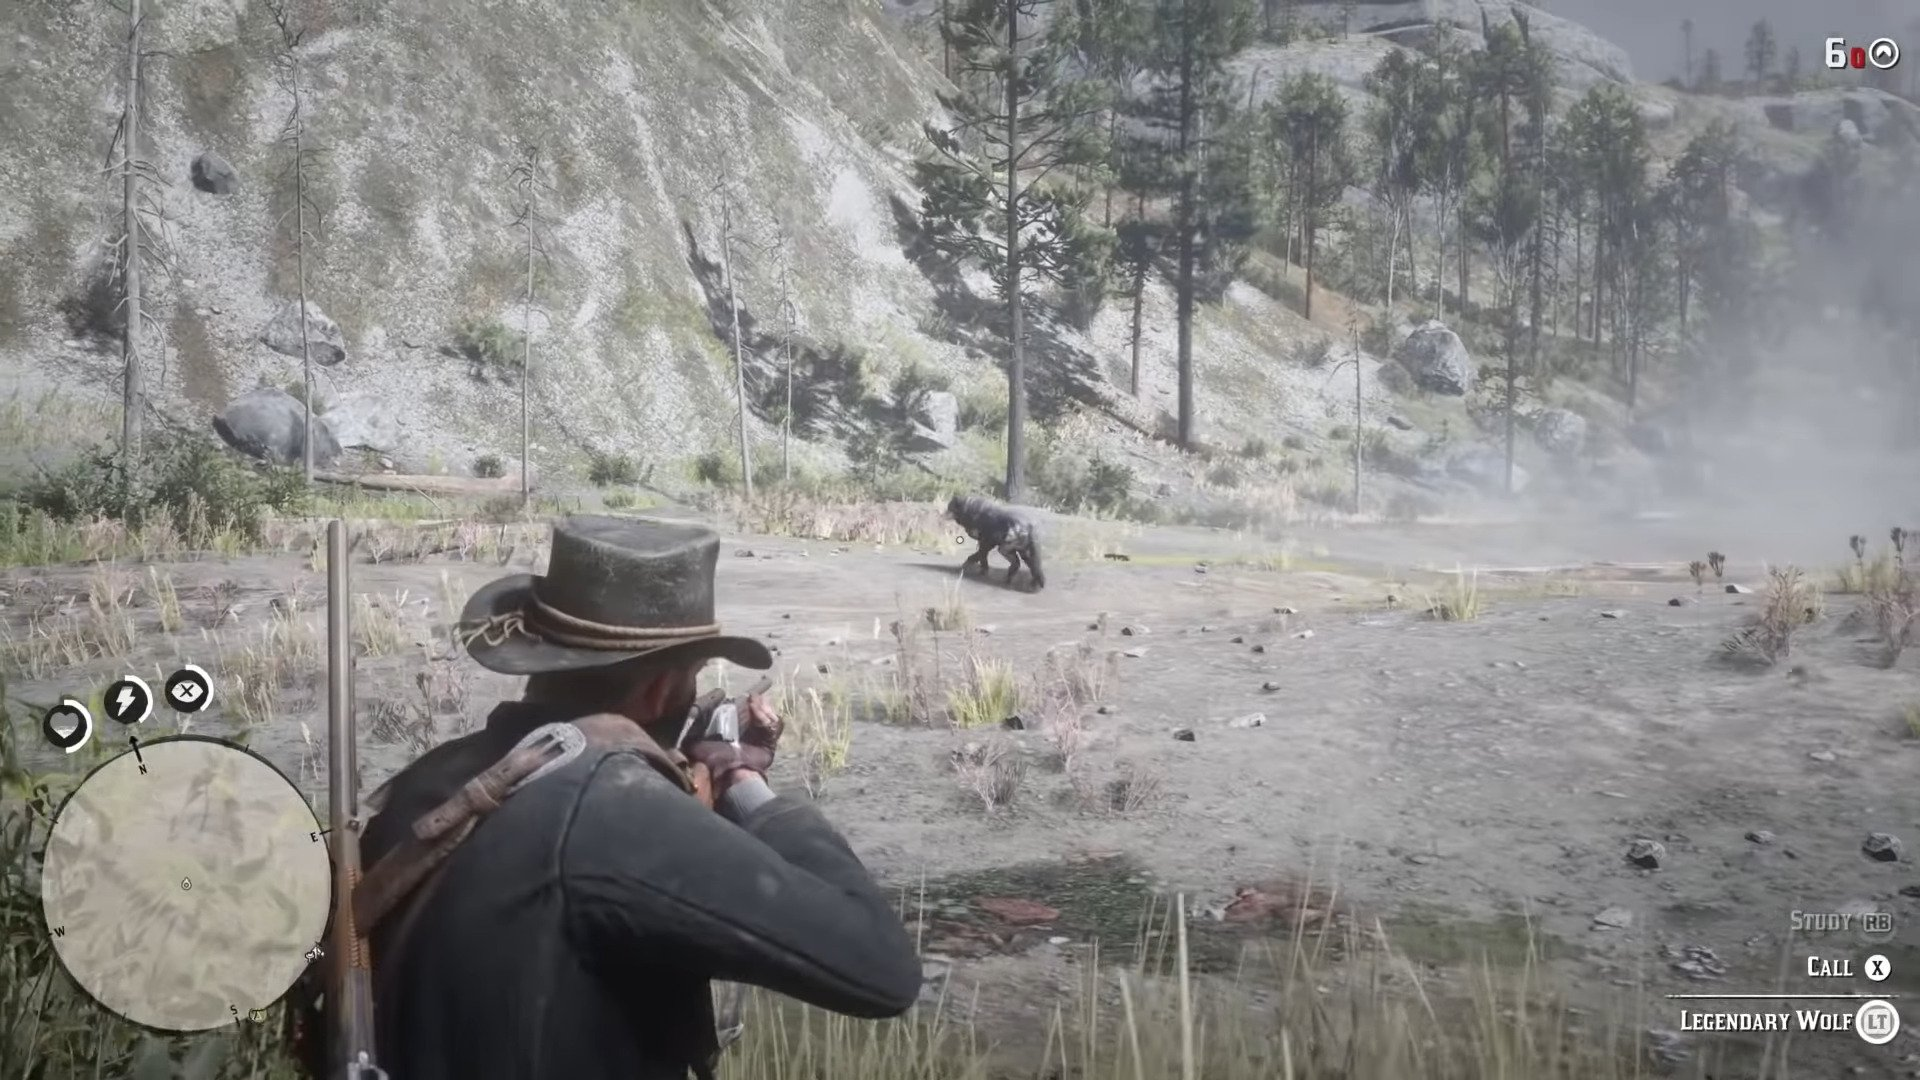 Red Dead Redemption 2: All Legendary Animals (Excluding Fish) Available To Hunt And Skin